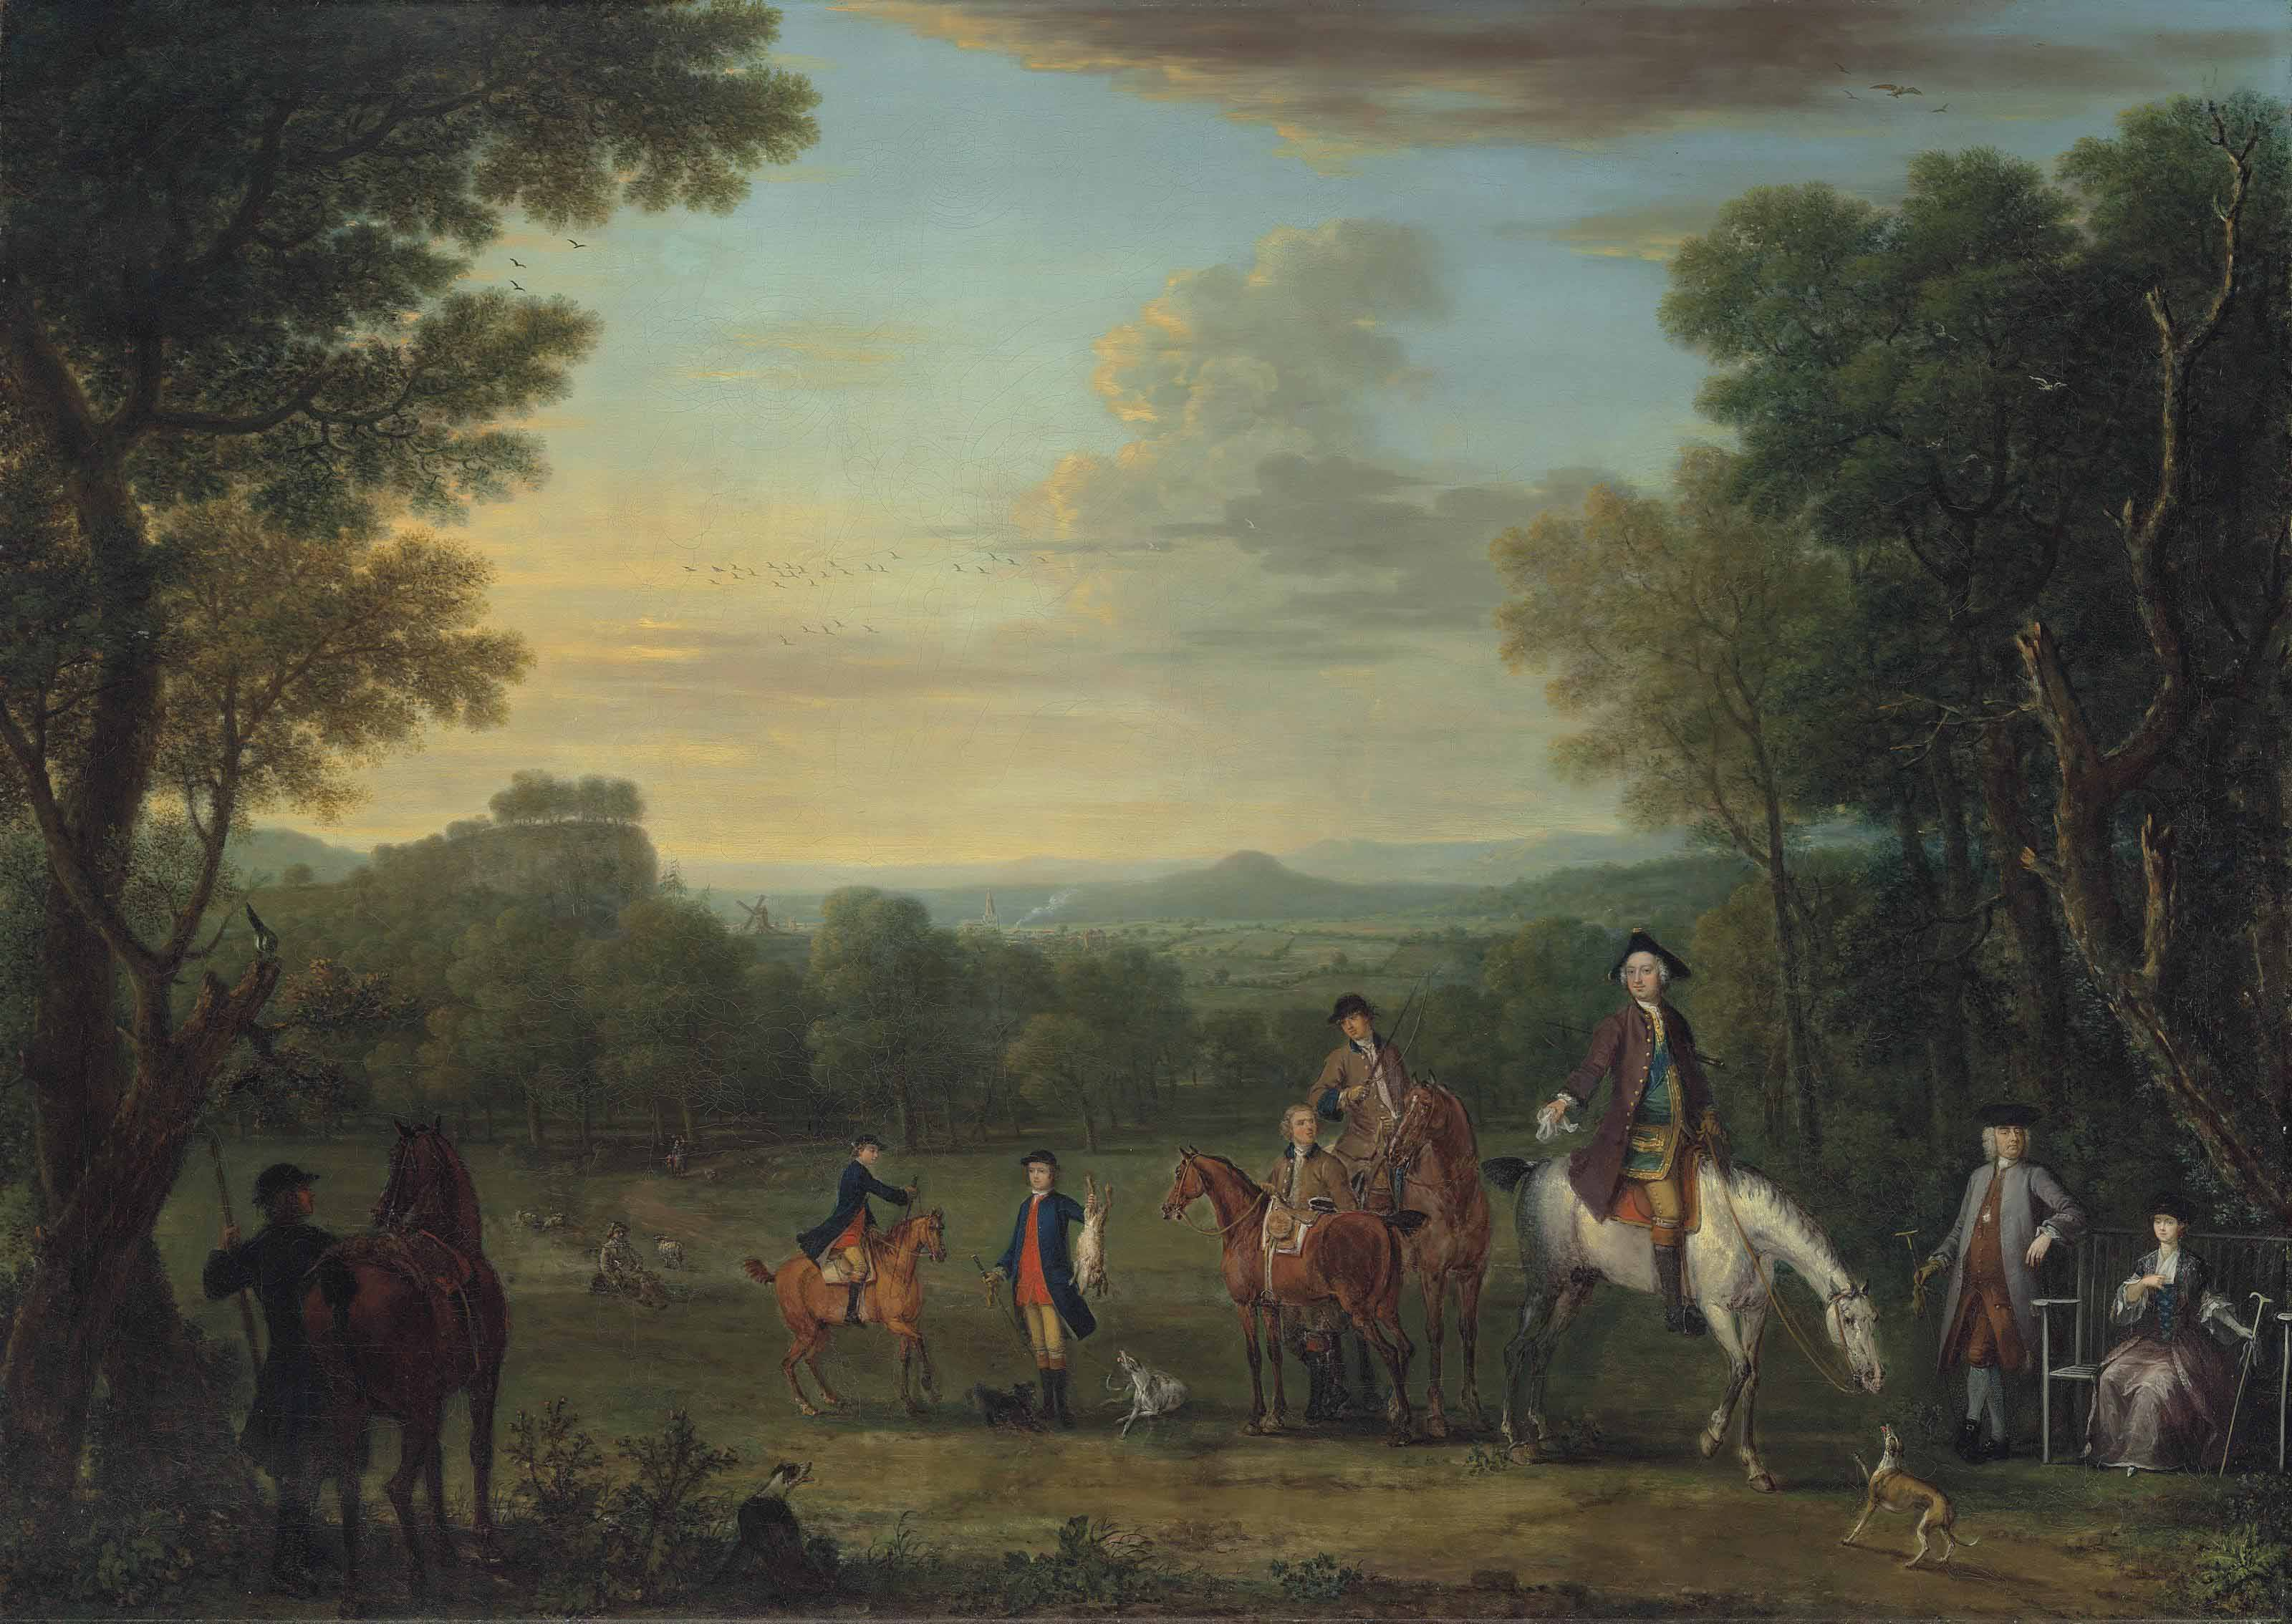 Thomas Osborne, 4th Duke of Leeds (1713-1789), on horseback, with a hunting party in an extensive wooded landscape